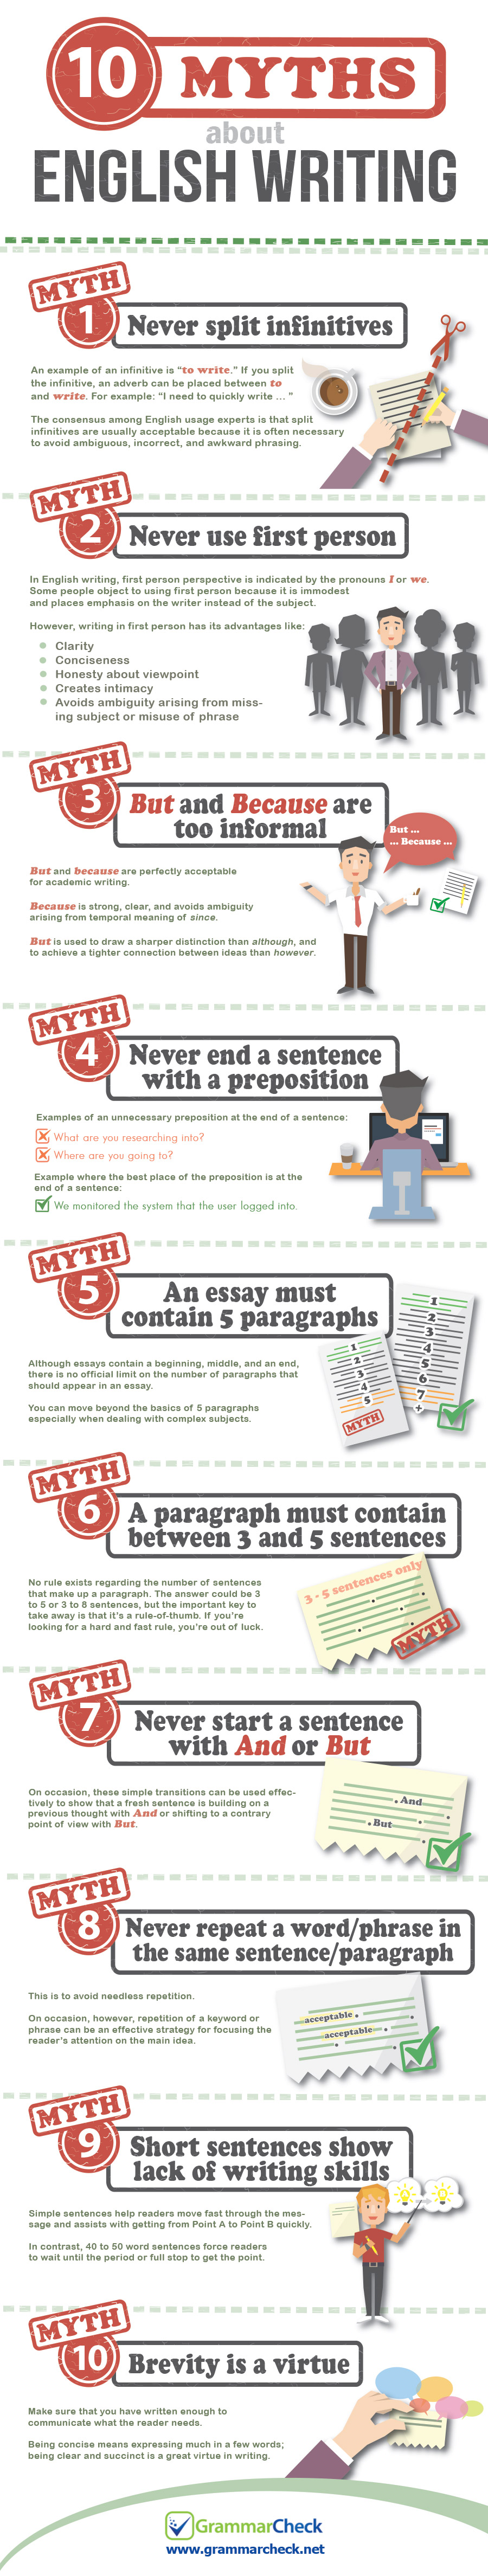 English Language: 10 Writing Myths - Infographic